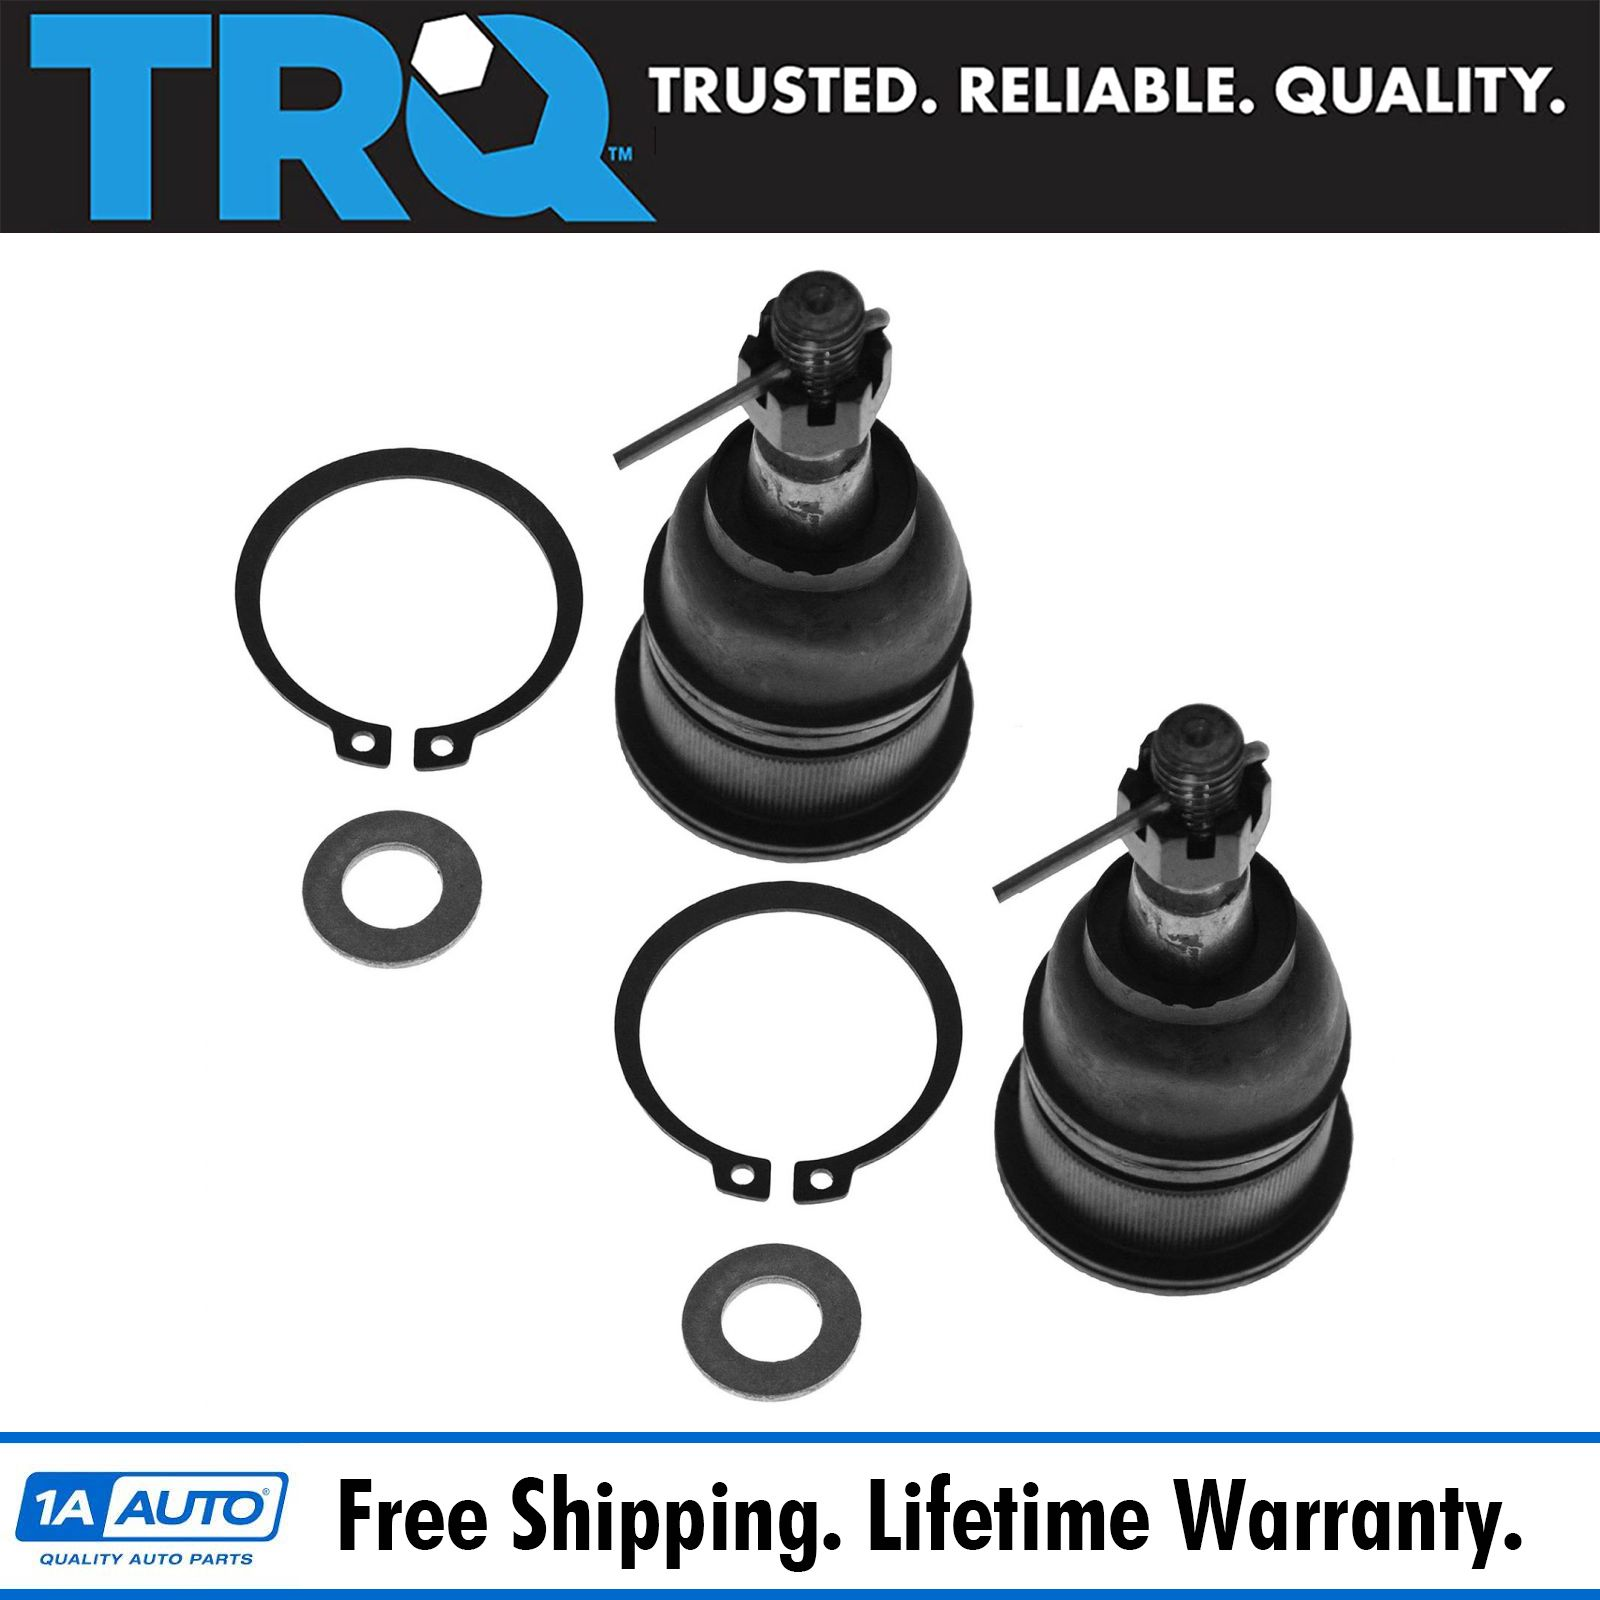 Car & Truck Suspension & Steering Parts Auto Parts and Vehicles For Chevrolet Silverado Suburban 2500 3500 Pair Set of 2 Front Lower Ball Joints